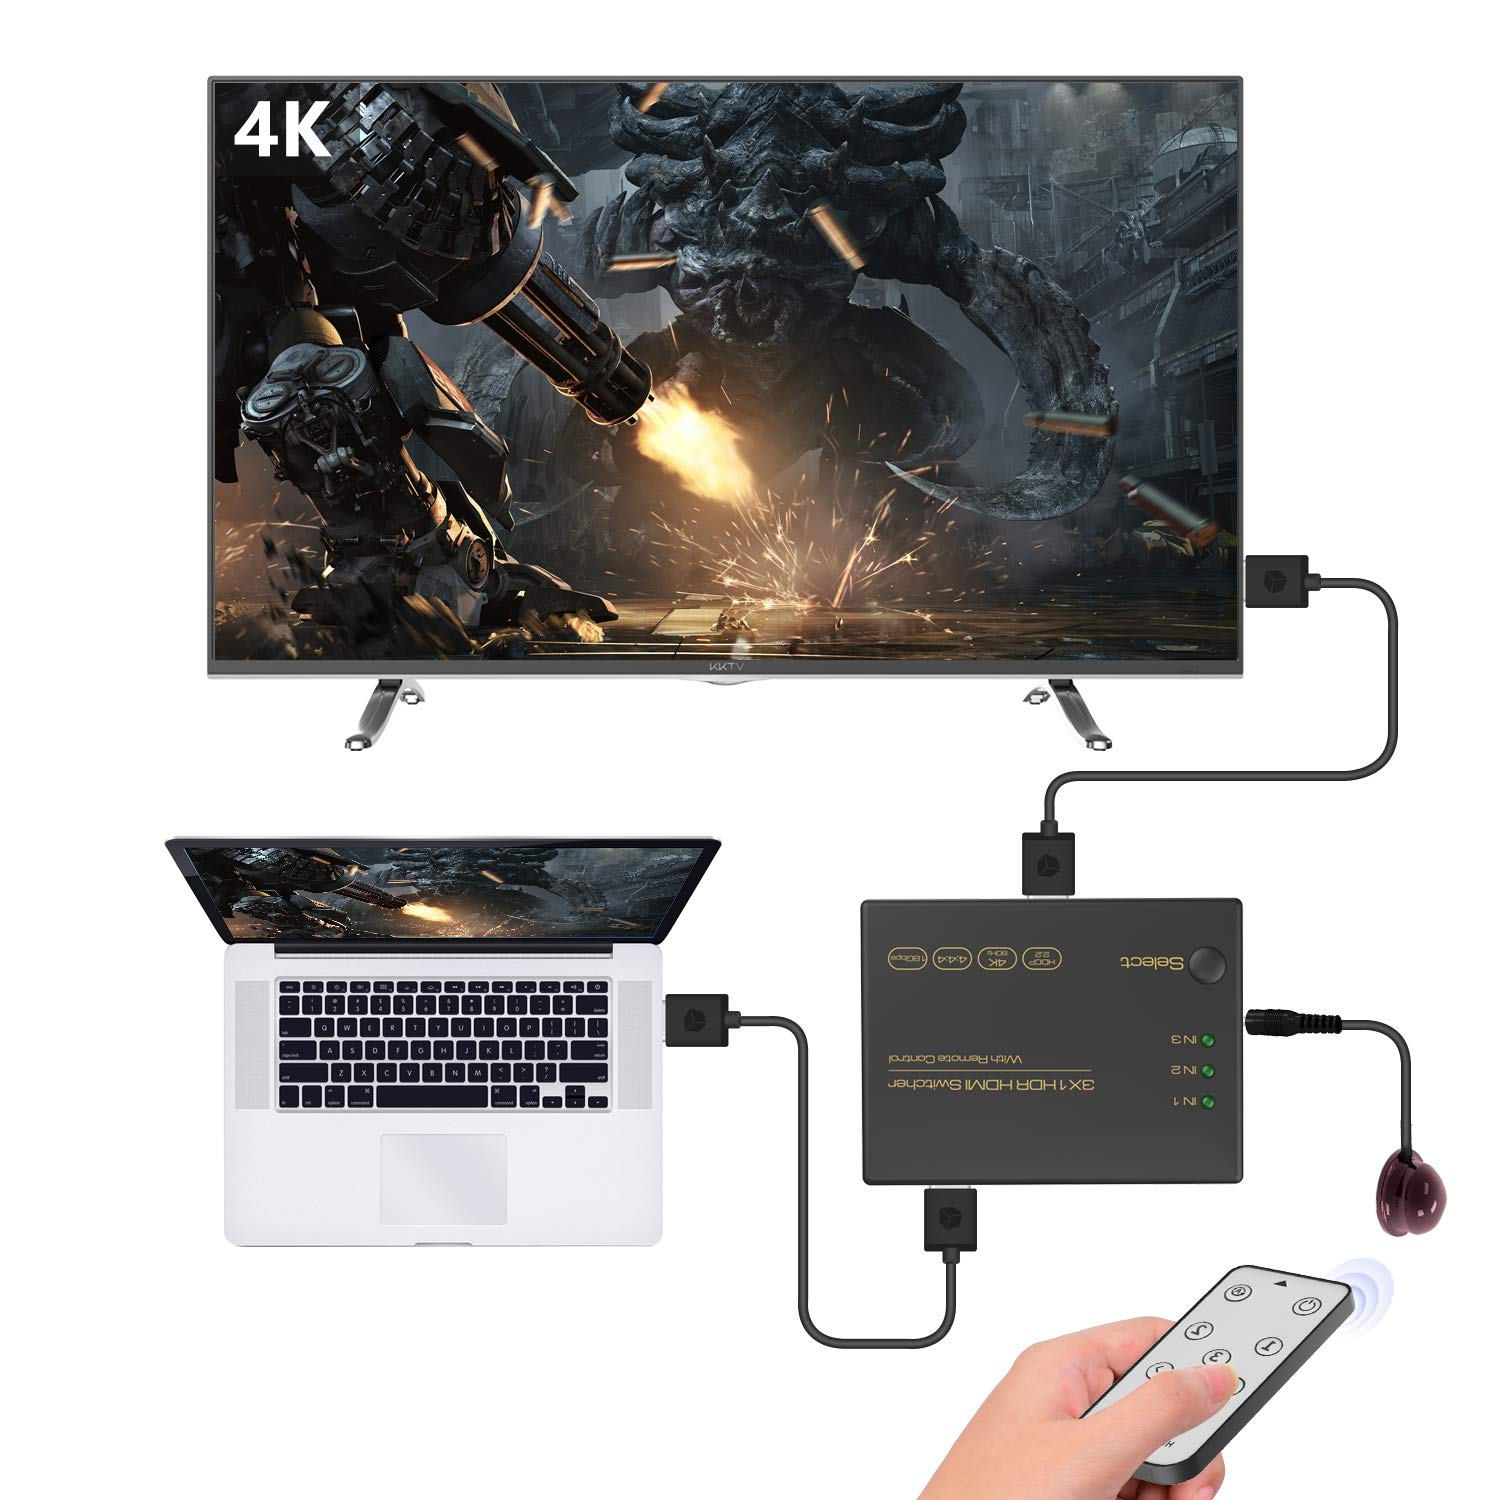 HDMI Switch 4K@60Hz 3x1 Hornbill HDMI 2.0 Switcher 3 in 1 Out HDMI Switcher Selector with IR Wireless Remote More Stable High Speed Full HD 1080P Supports HDCP 2.2//PS4 PRO//Xbox//OneX